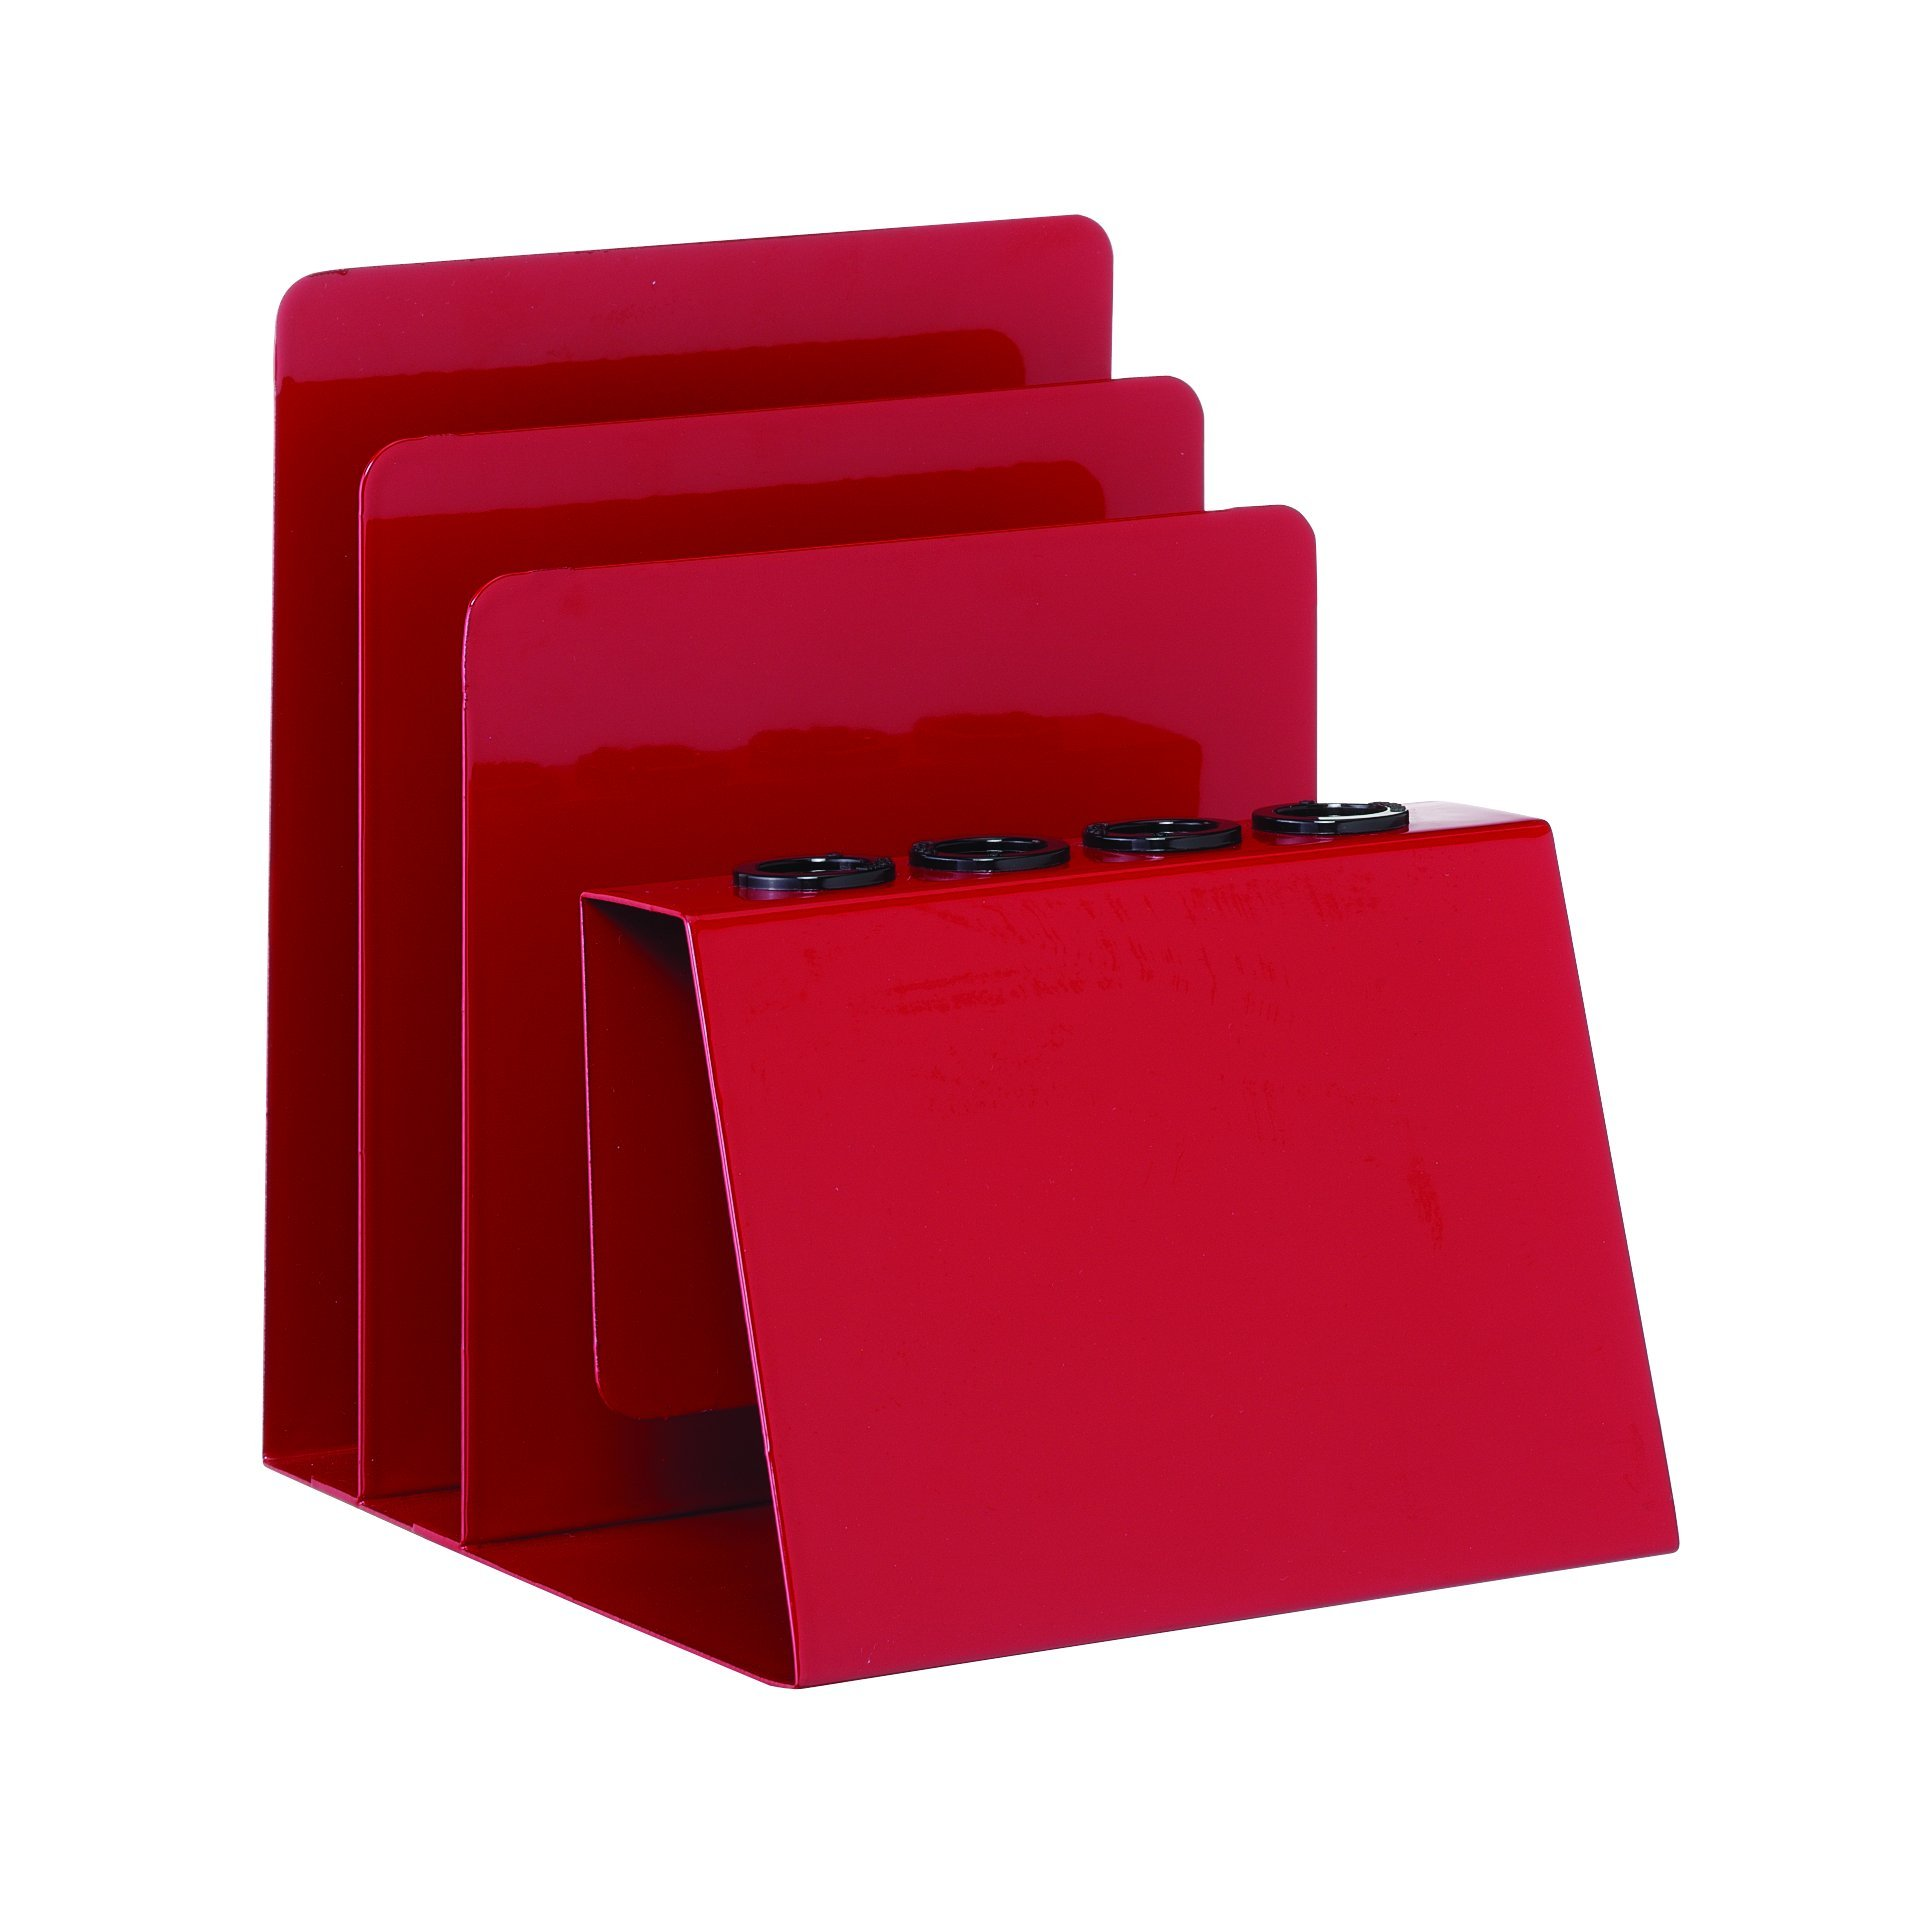 STEELMASTER Pen and Note Holder, 5.38 x 5.25 x 4.5 Inches, Red (26494007)